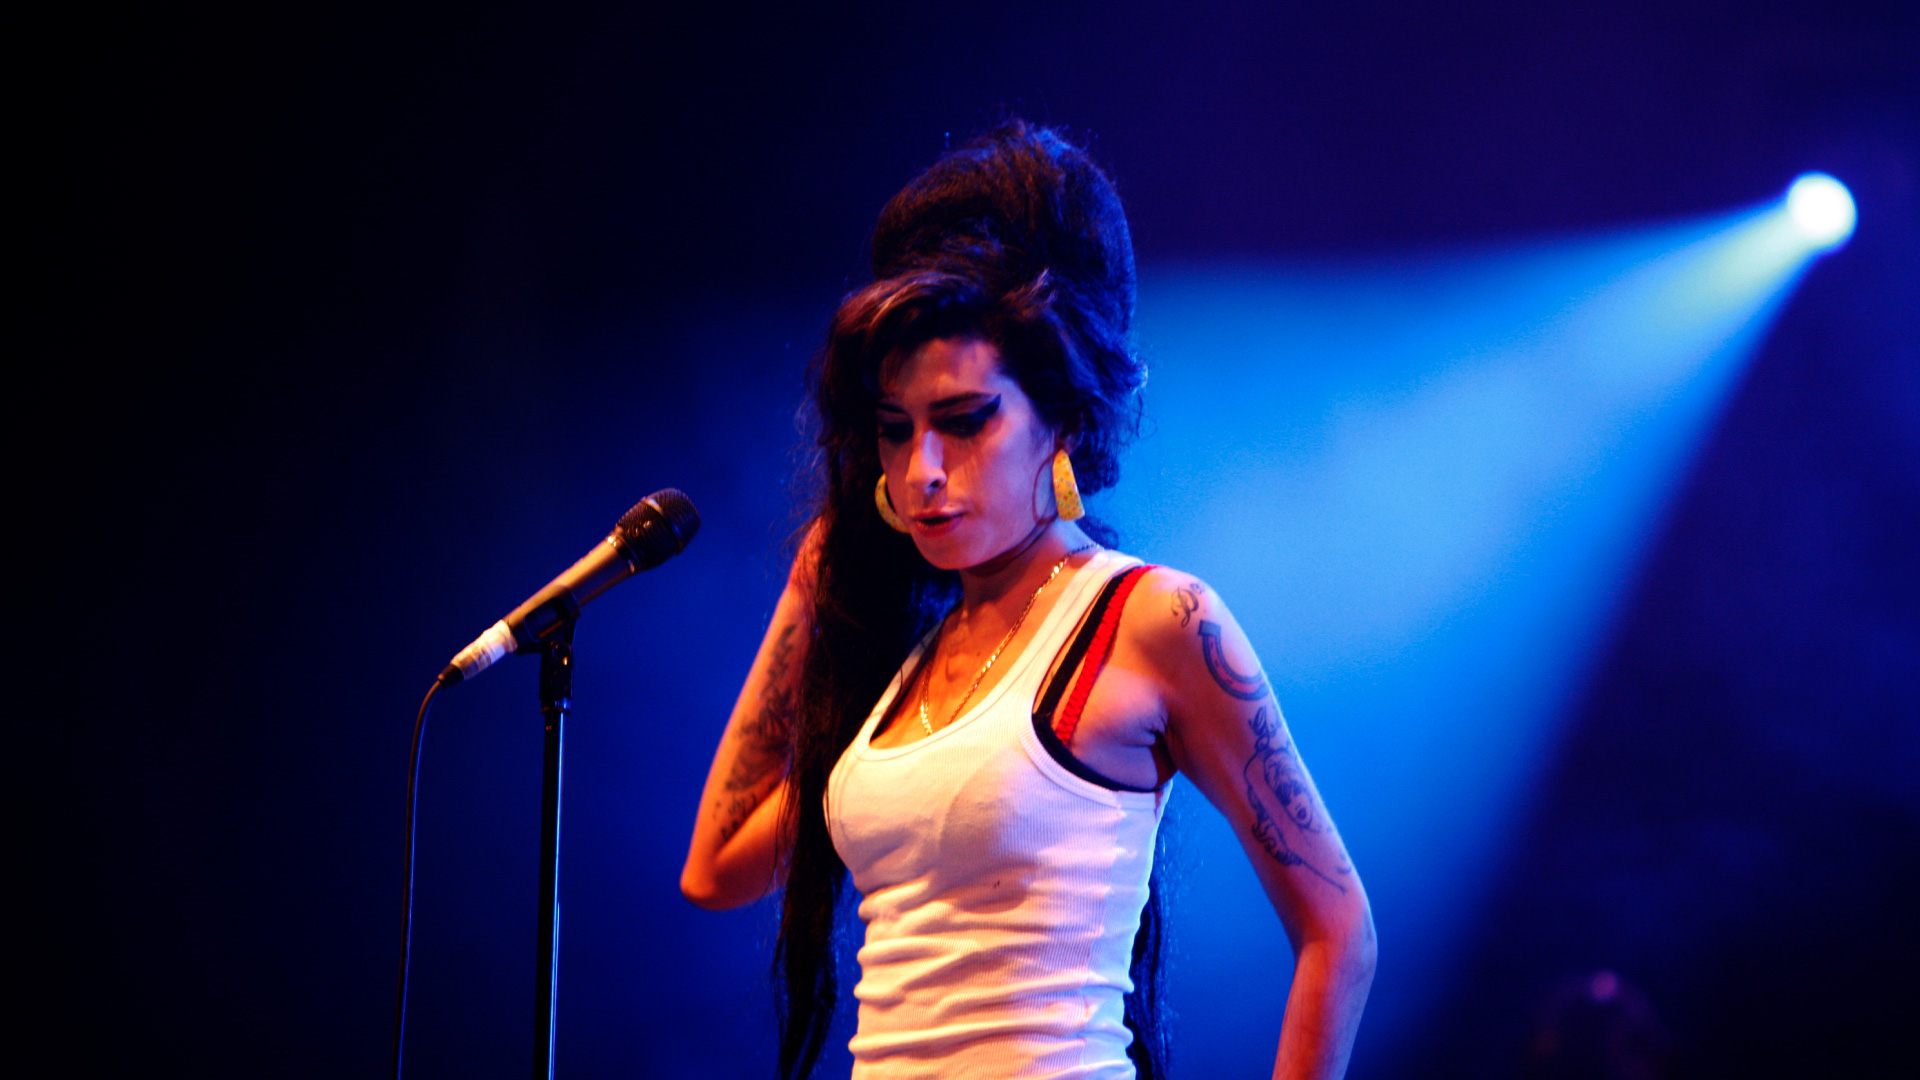 Artistas y canciones favoritas de Amy Winehouse